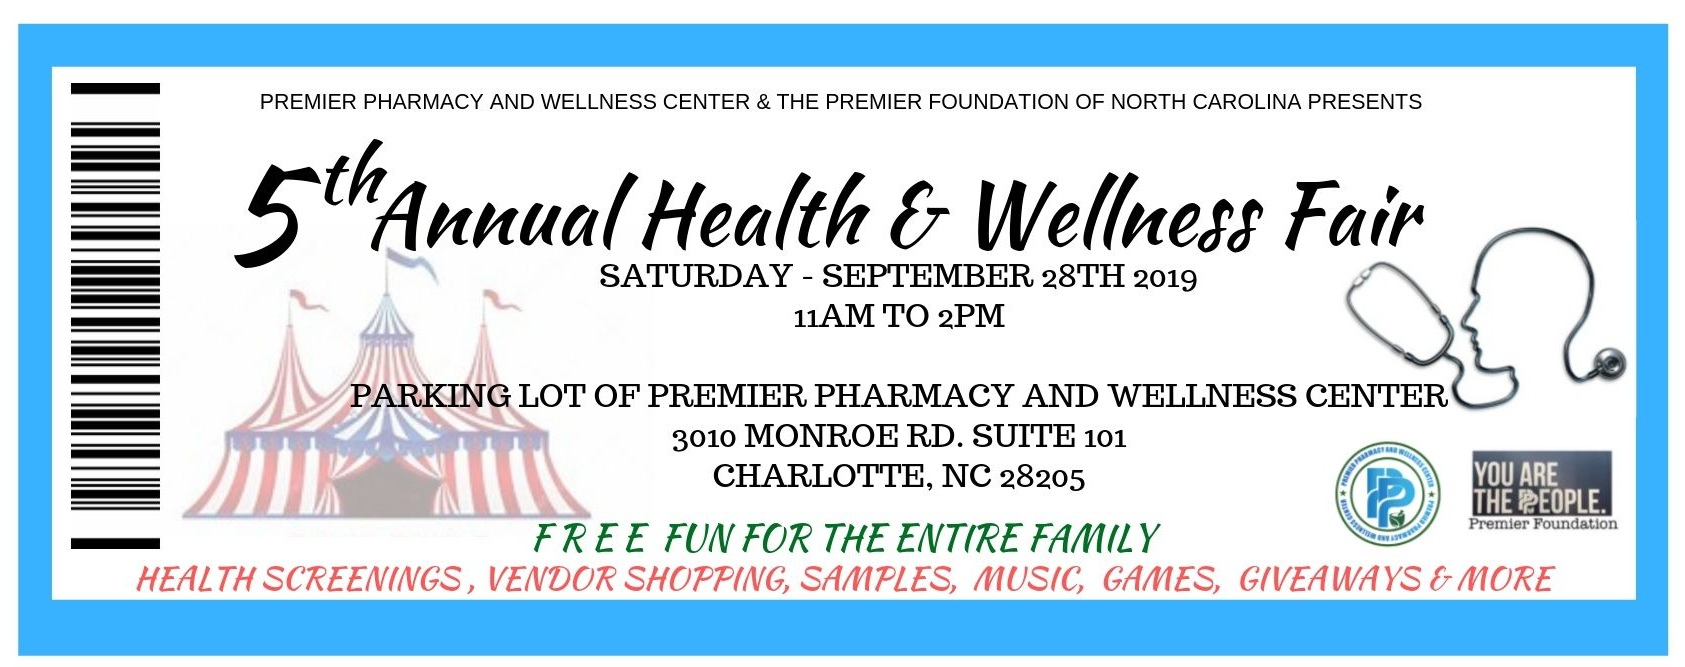 2019 Health & Wellness Fair - Time: 11am to 2pmLocation: Parking Lot of Premier Pharmacy and Wellness Center located at 3010 Monroe Rd. Suite 101 Charlotte, NC 28205